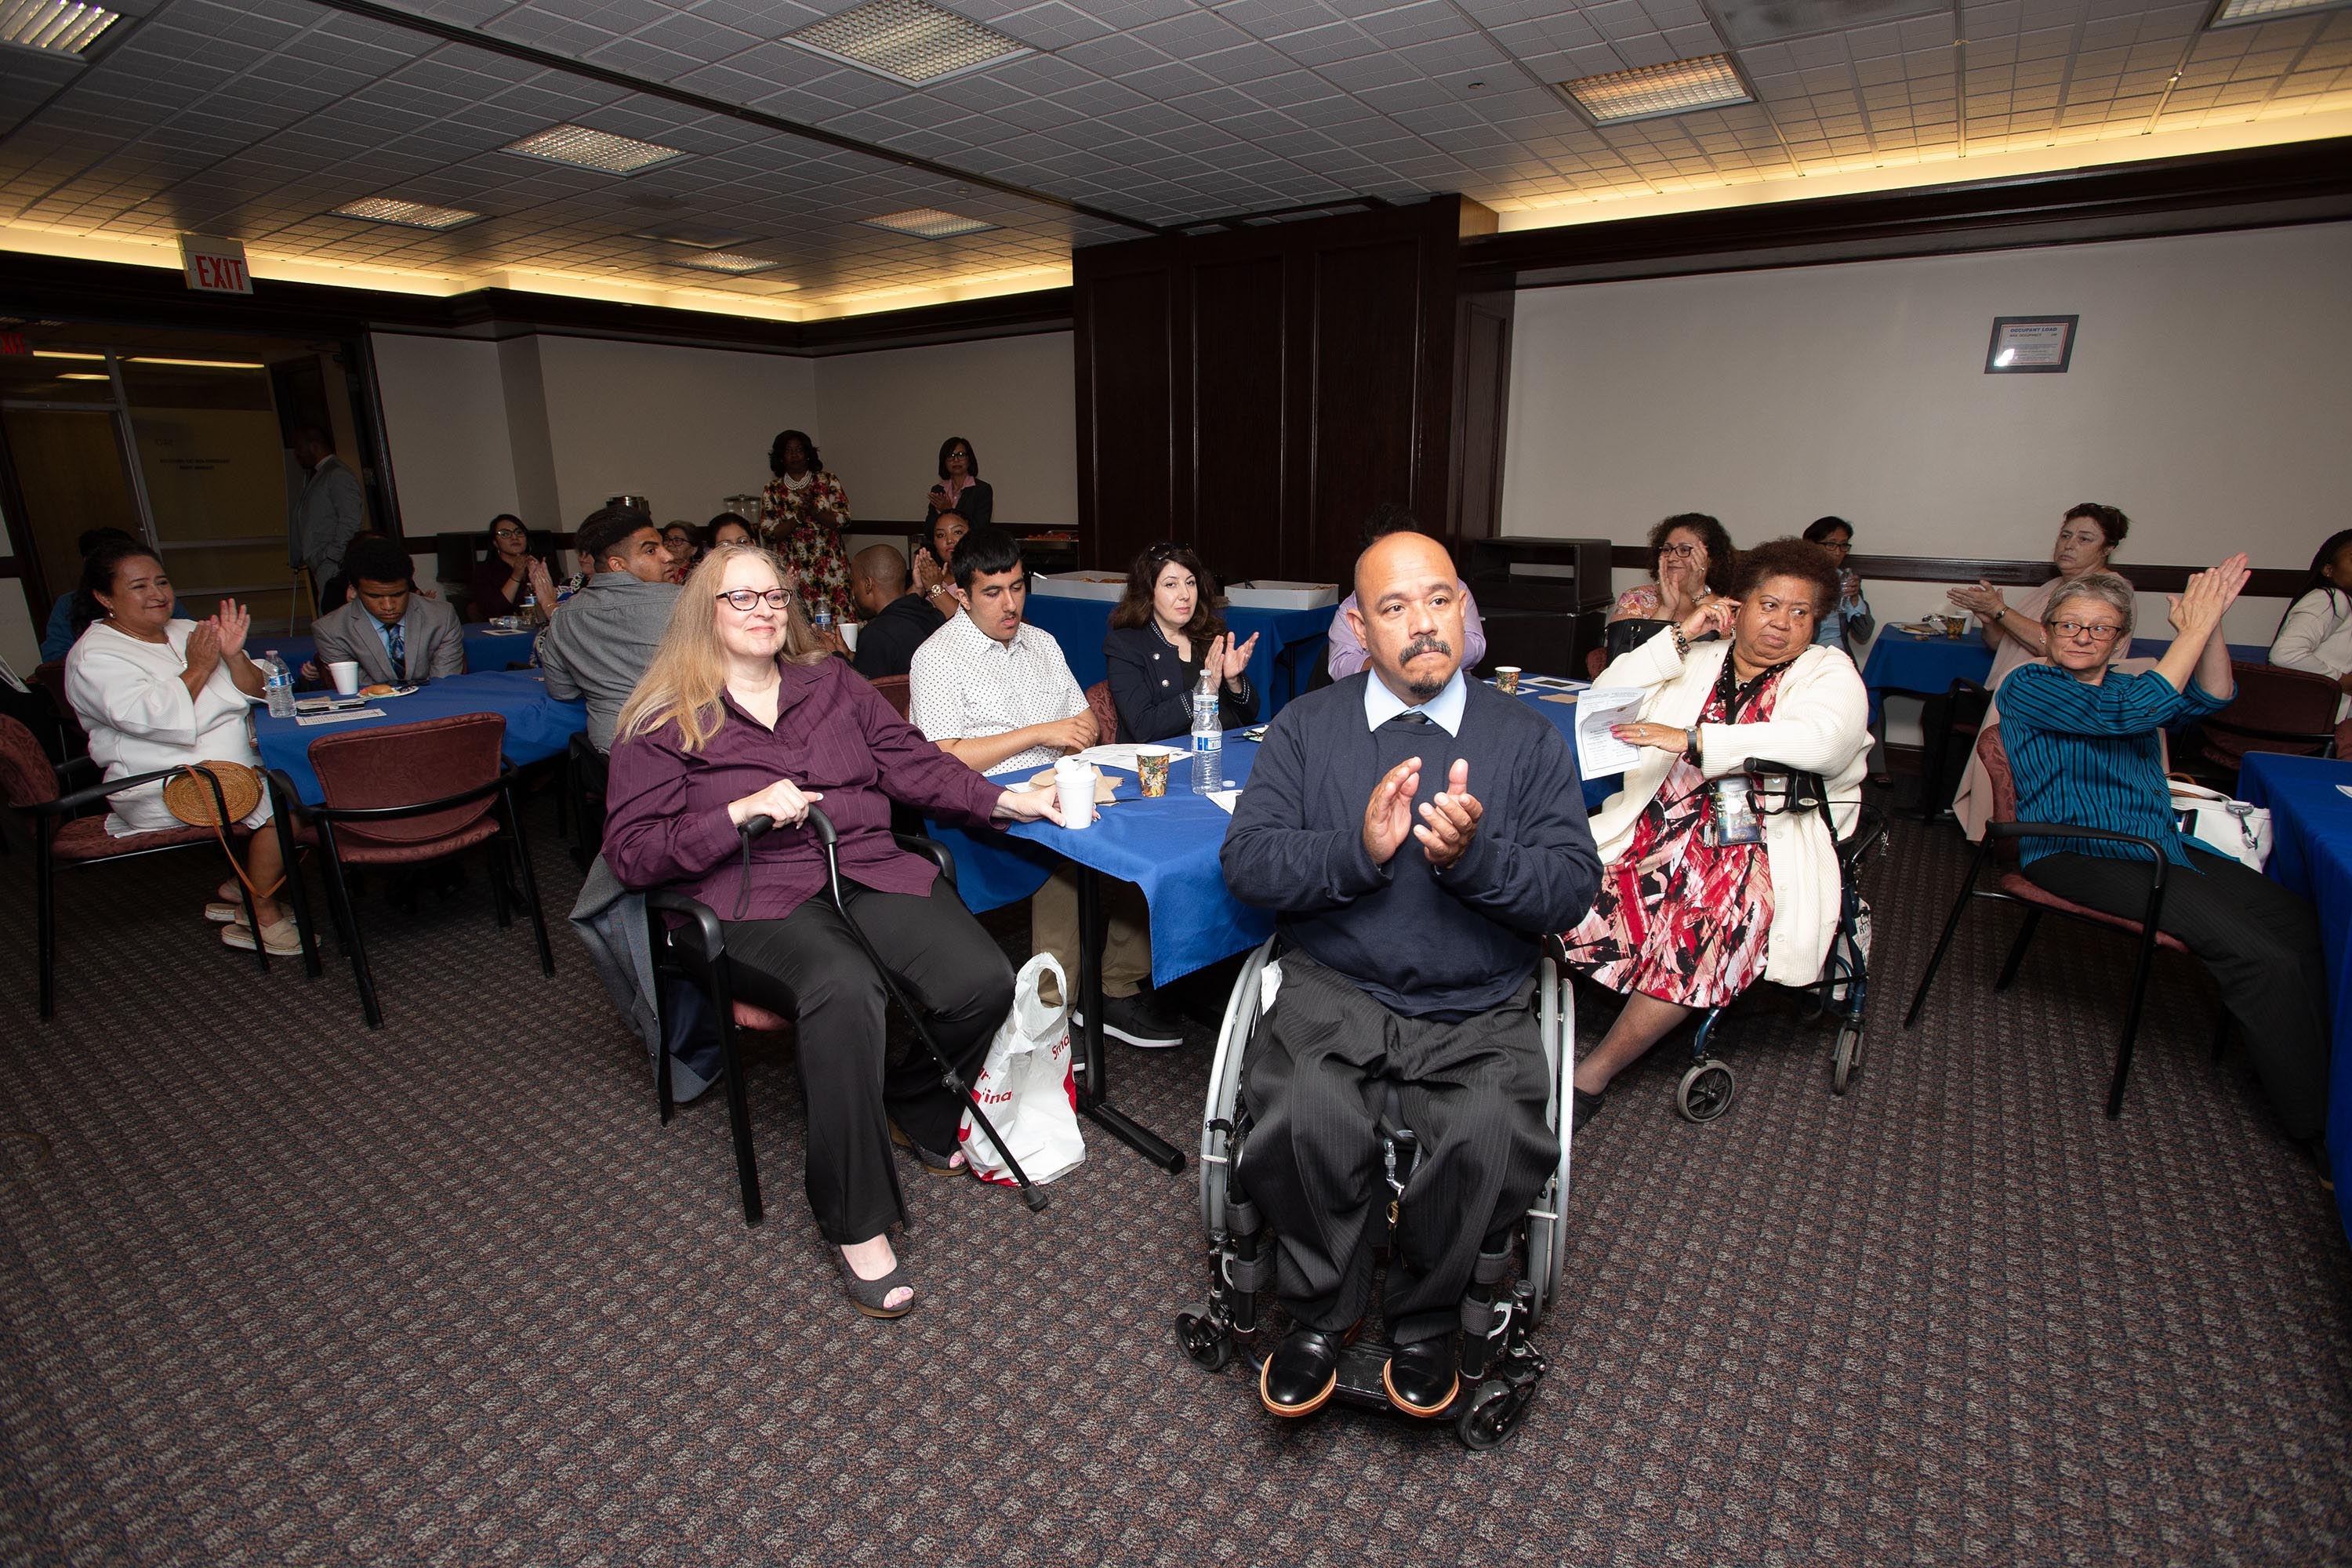 Commission on Disabilities<br>  <b>June 18, 2019 – Scholarship awards luncheon</b><br> <i>Photo by Bryan Chan / Board of Supervisors</i>